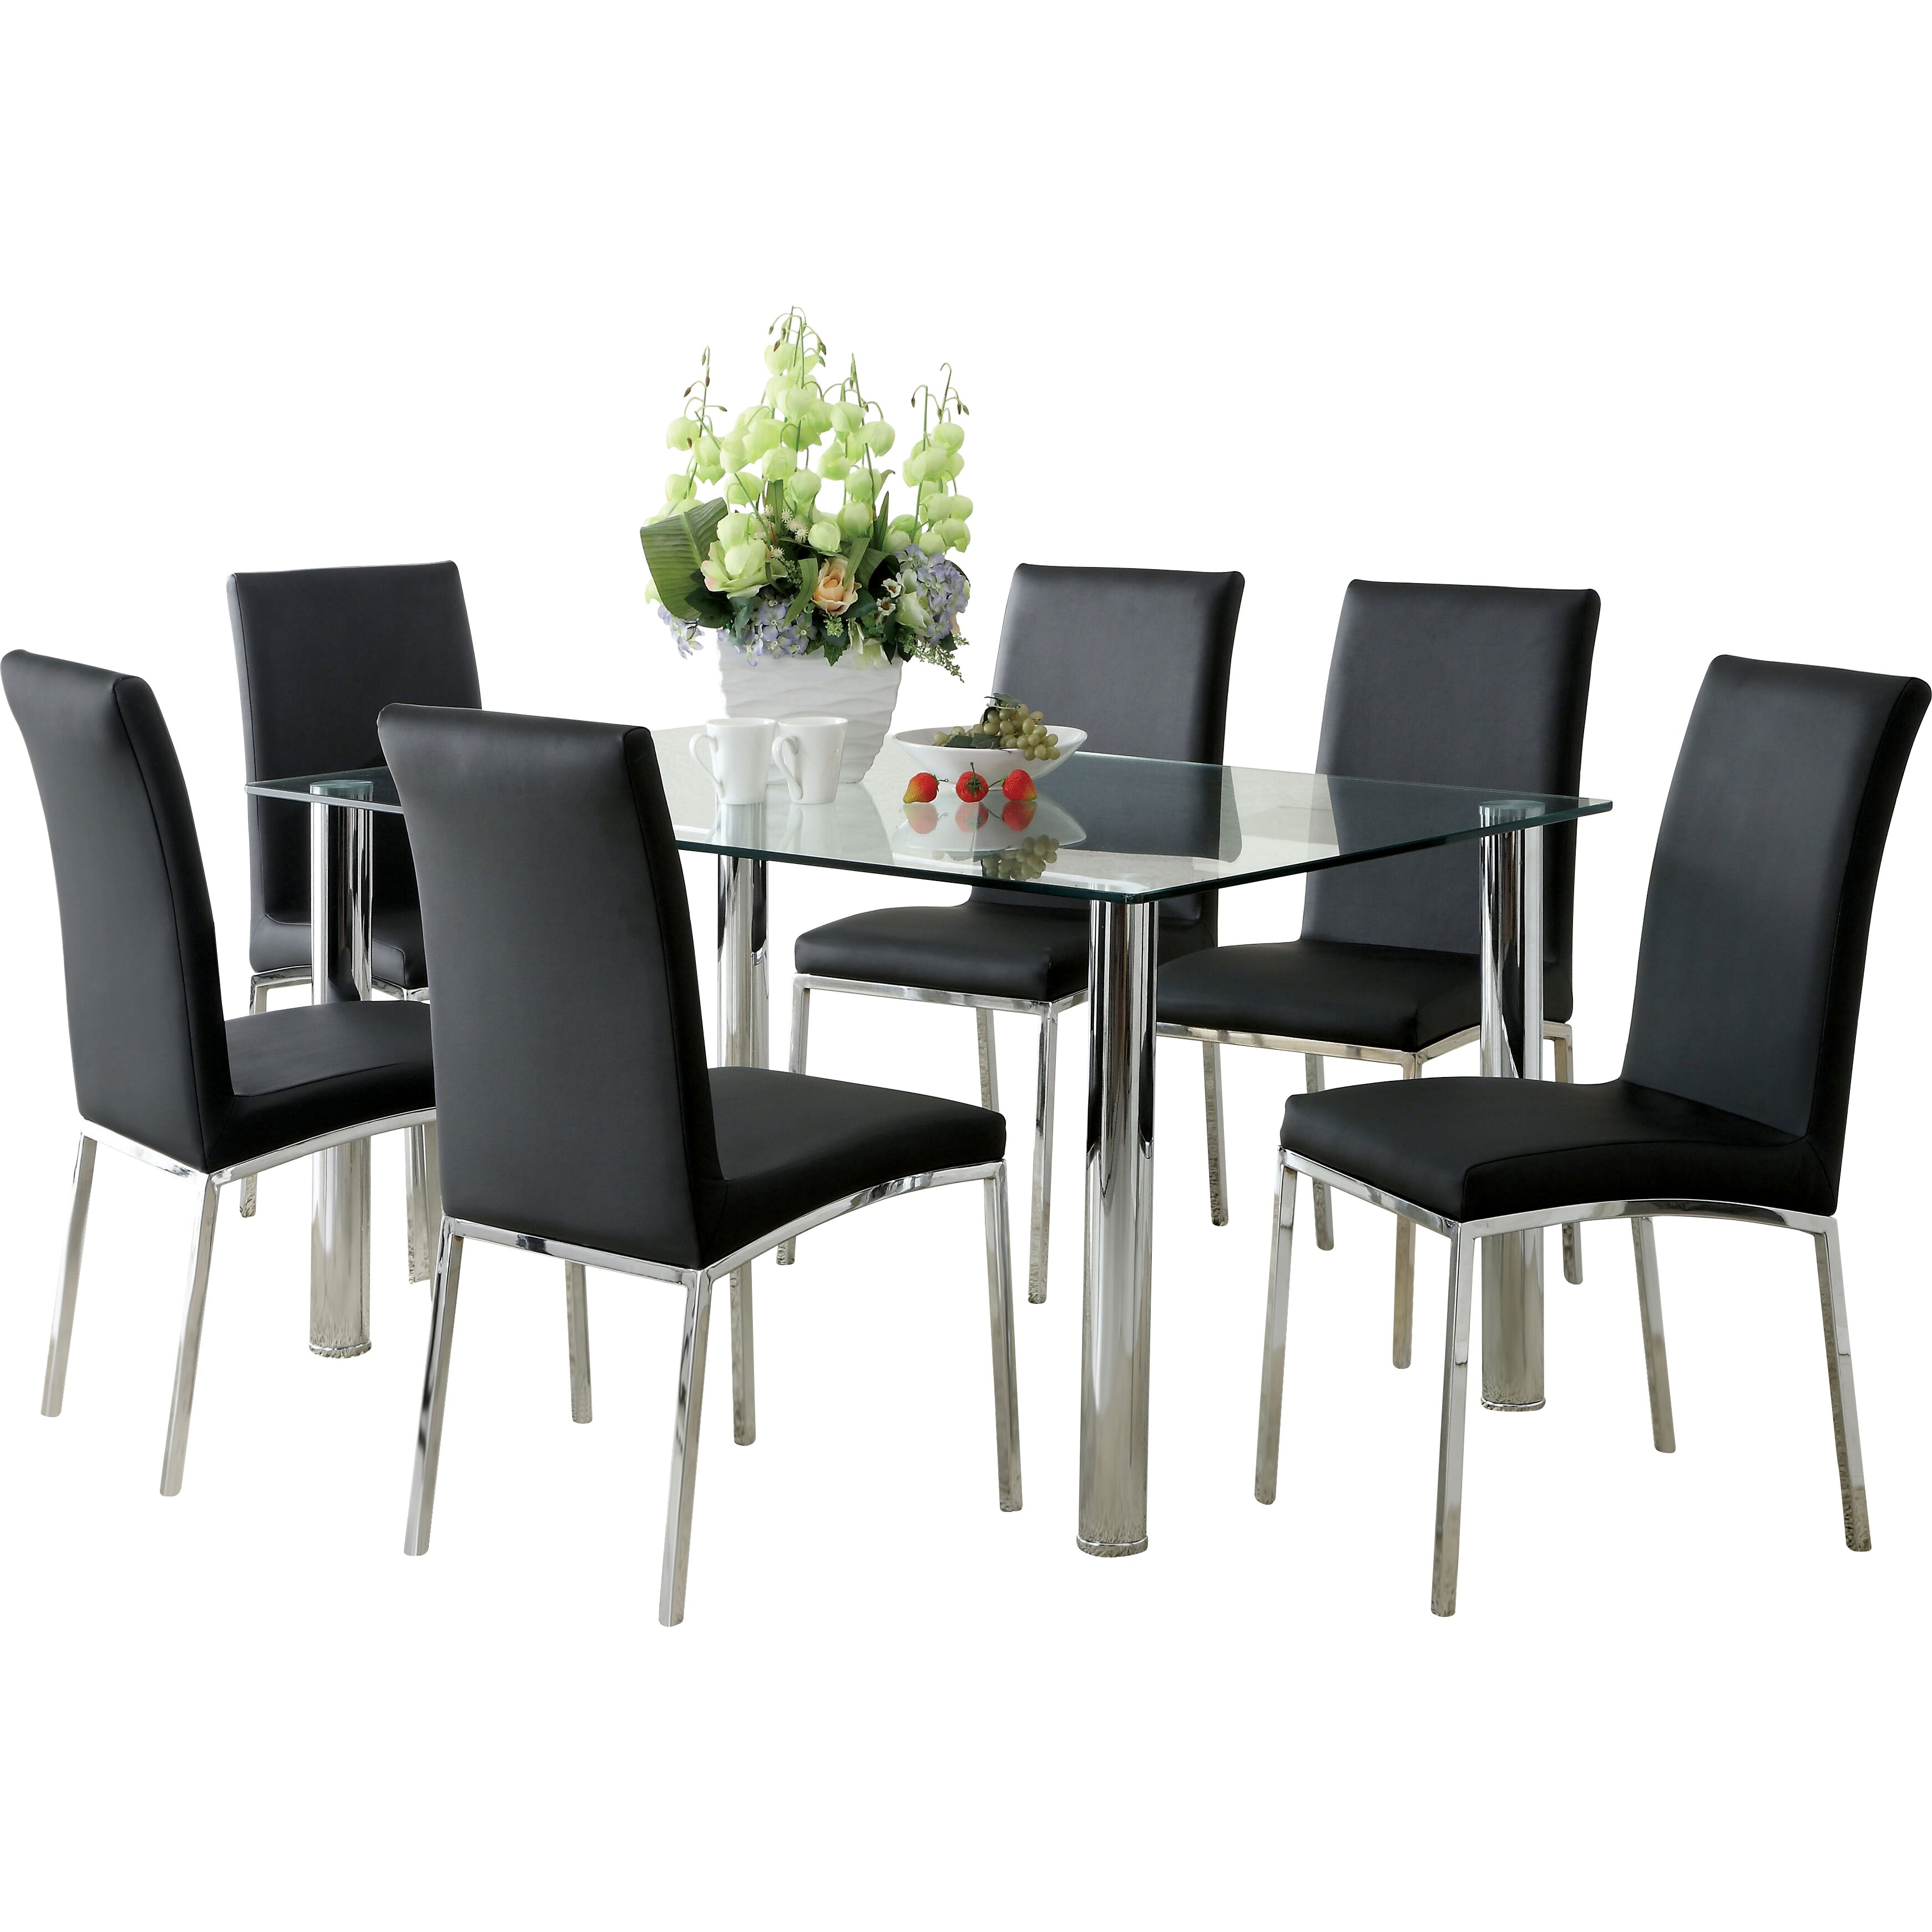 garden oasis langston 5 piece dining set collections